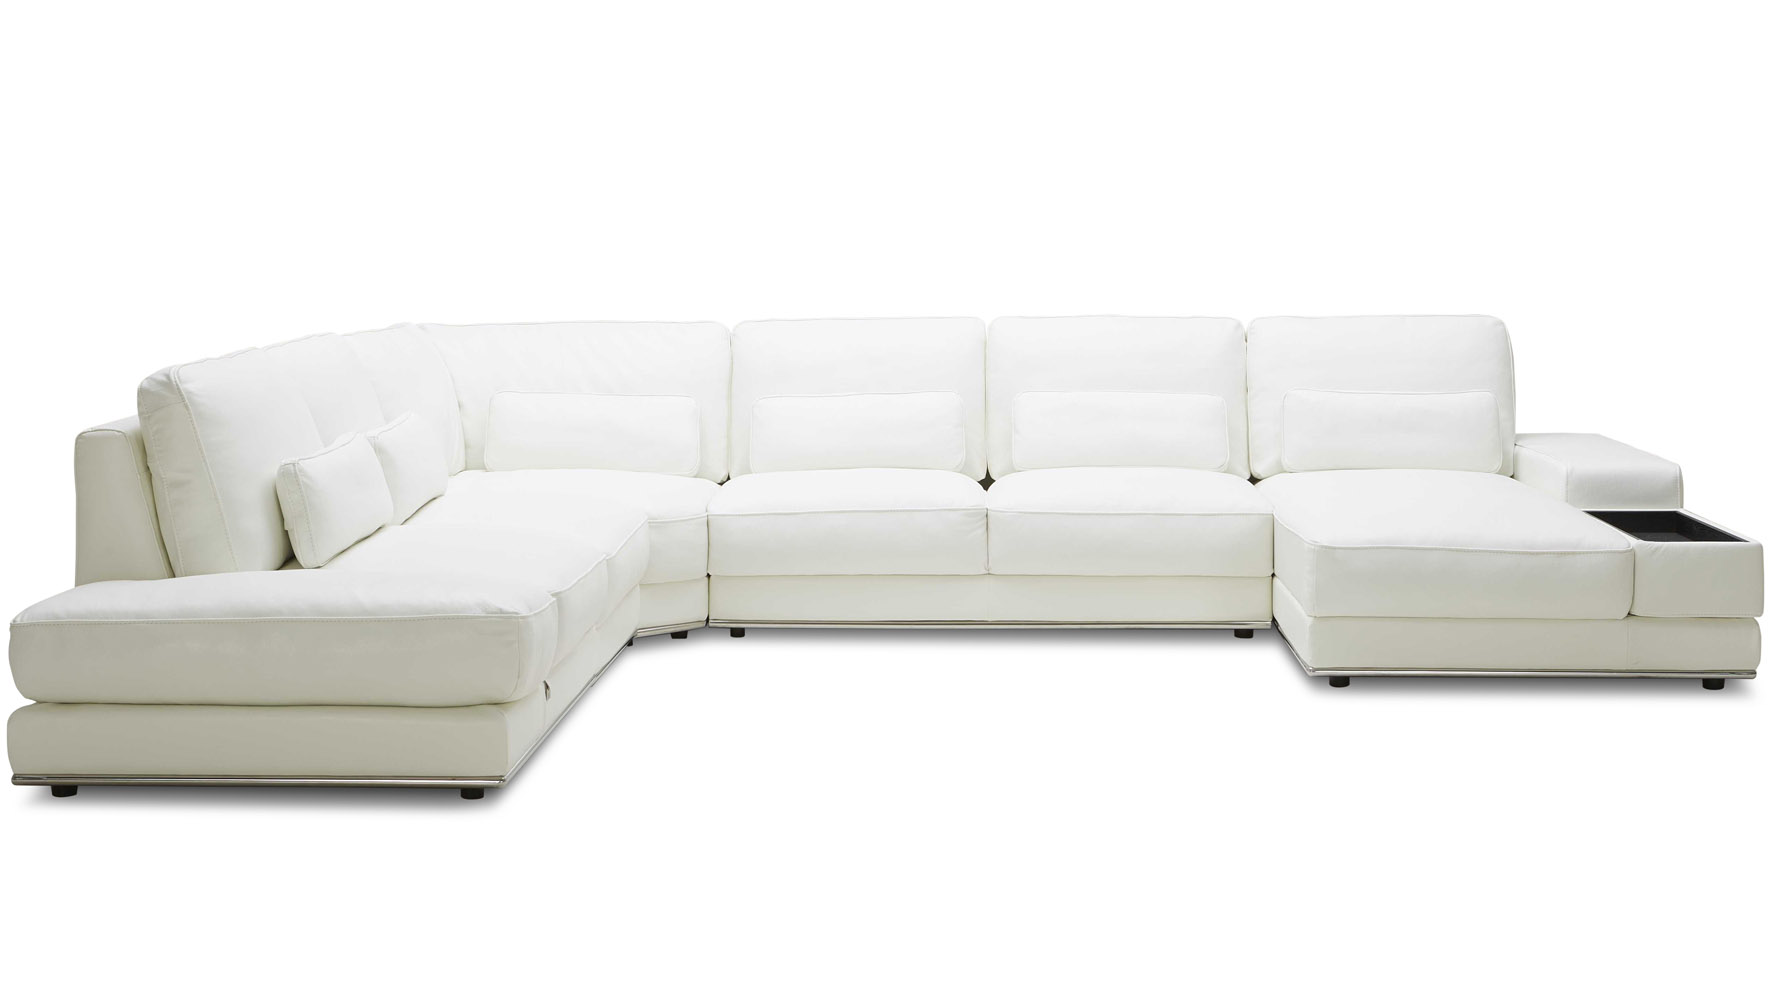 3 piece leather sectional sofa with chaise grey white pillows modern nolan zuri